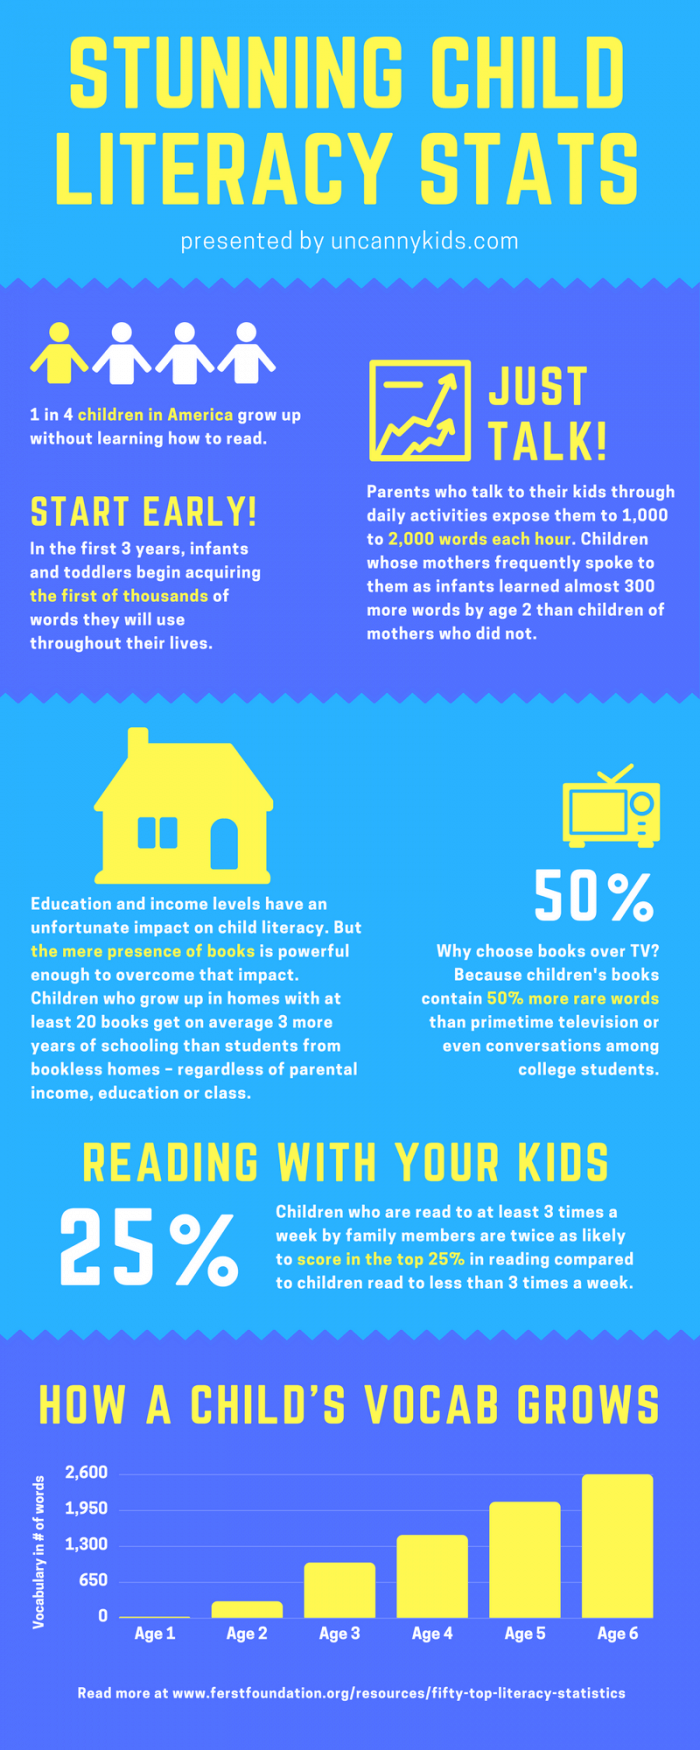 Reading is helping children succeed